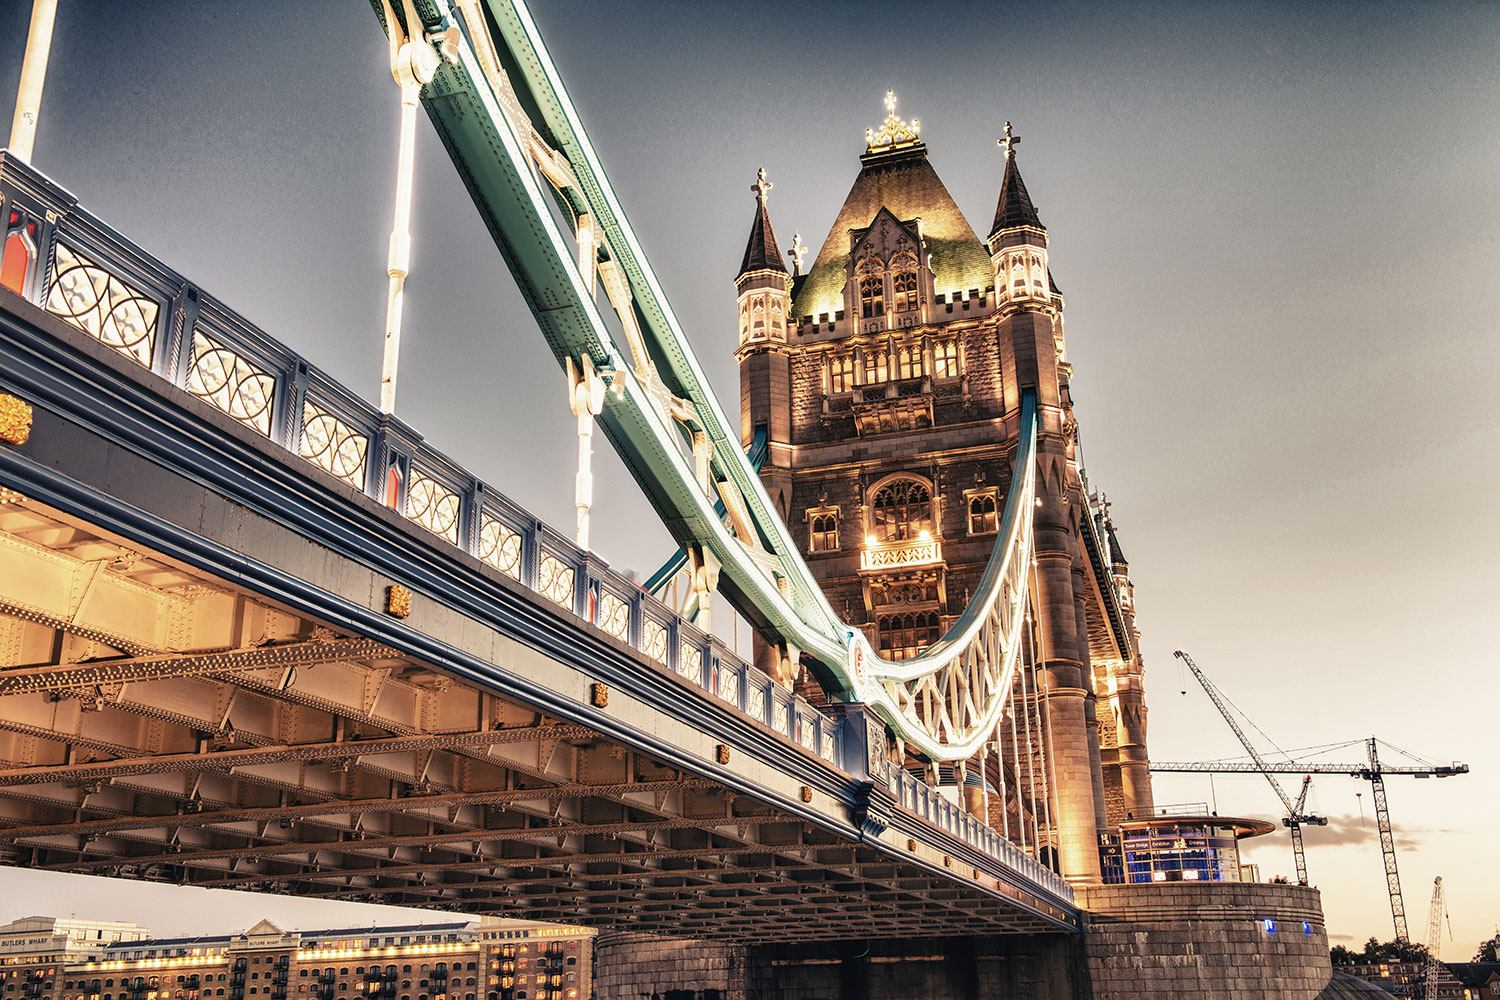 Fotomurale Tower Bridge XXL